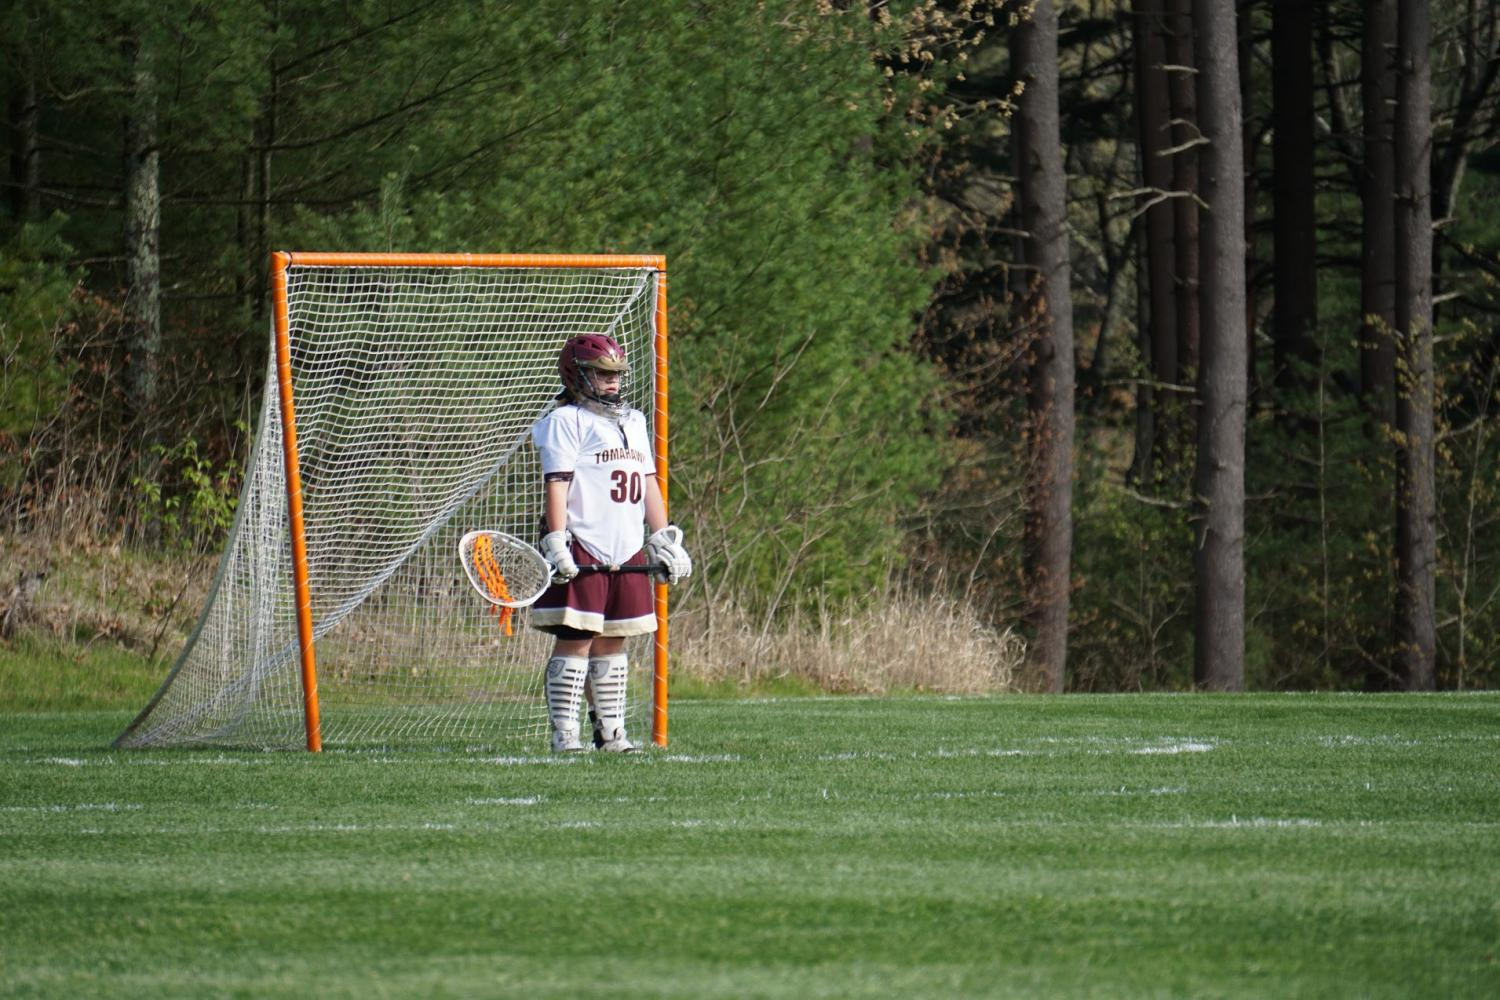 Sophomore+goalie+Erin+Blake+stands+reading+the+field%2C+waiting+to+block+the+next+ball.